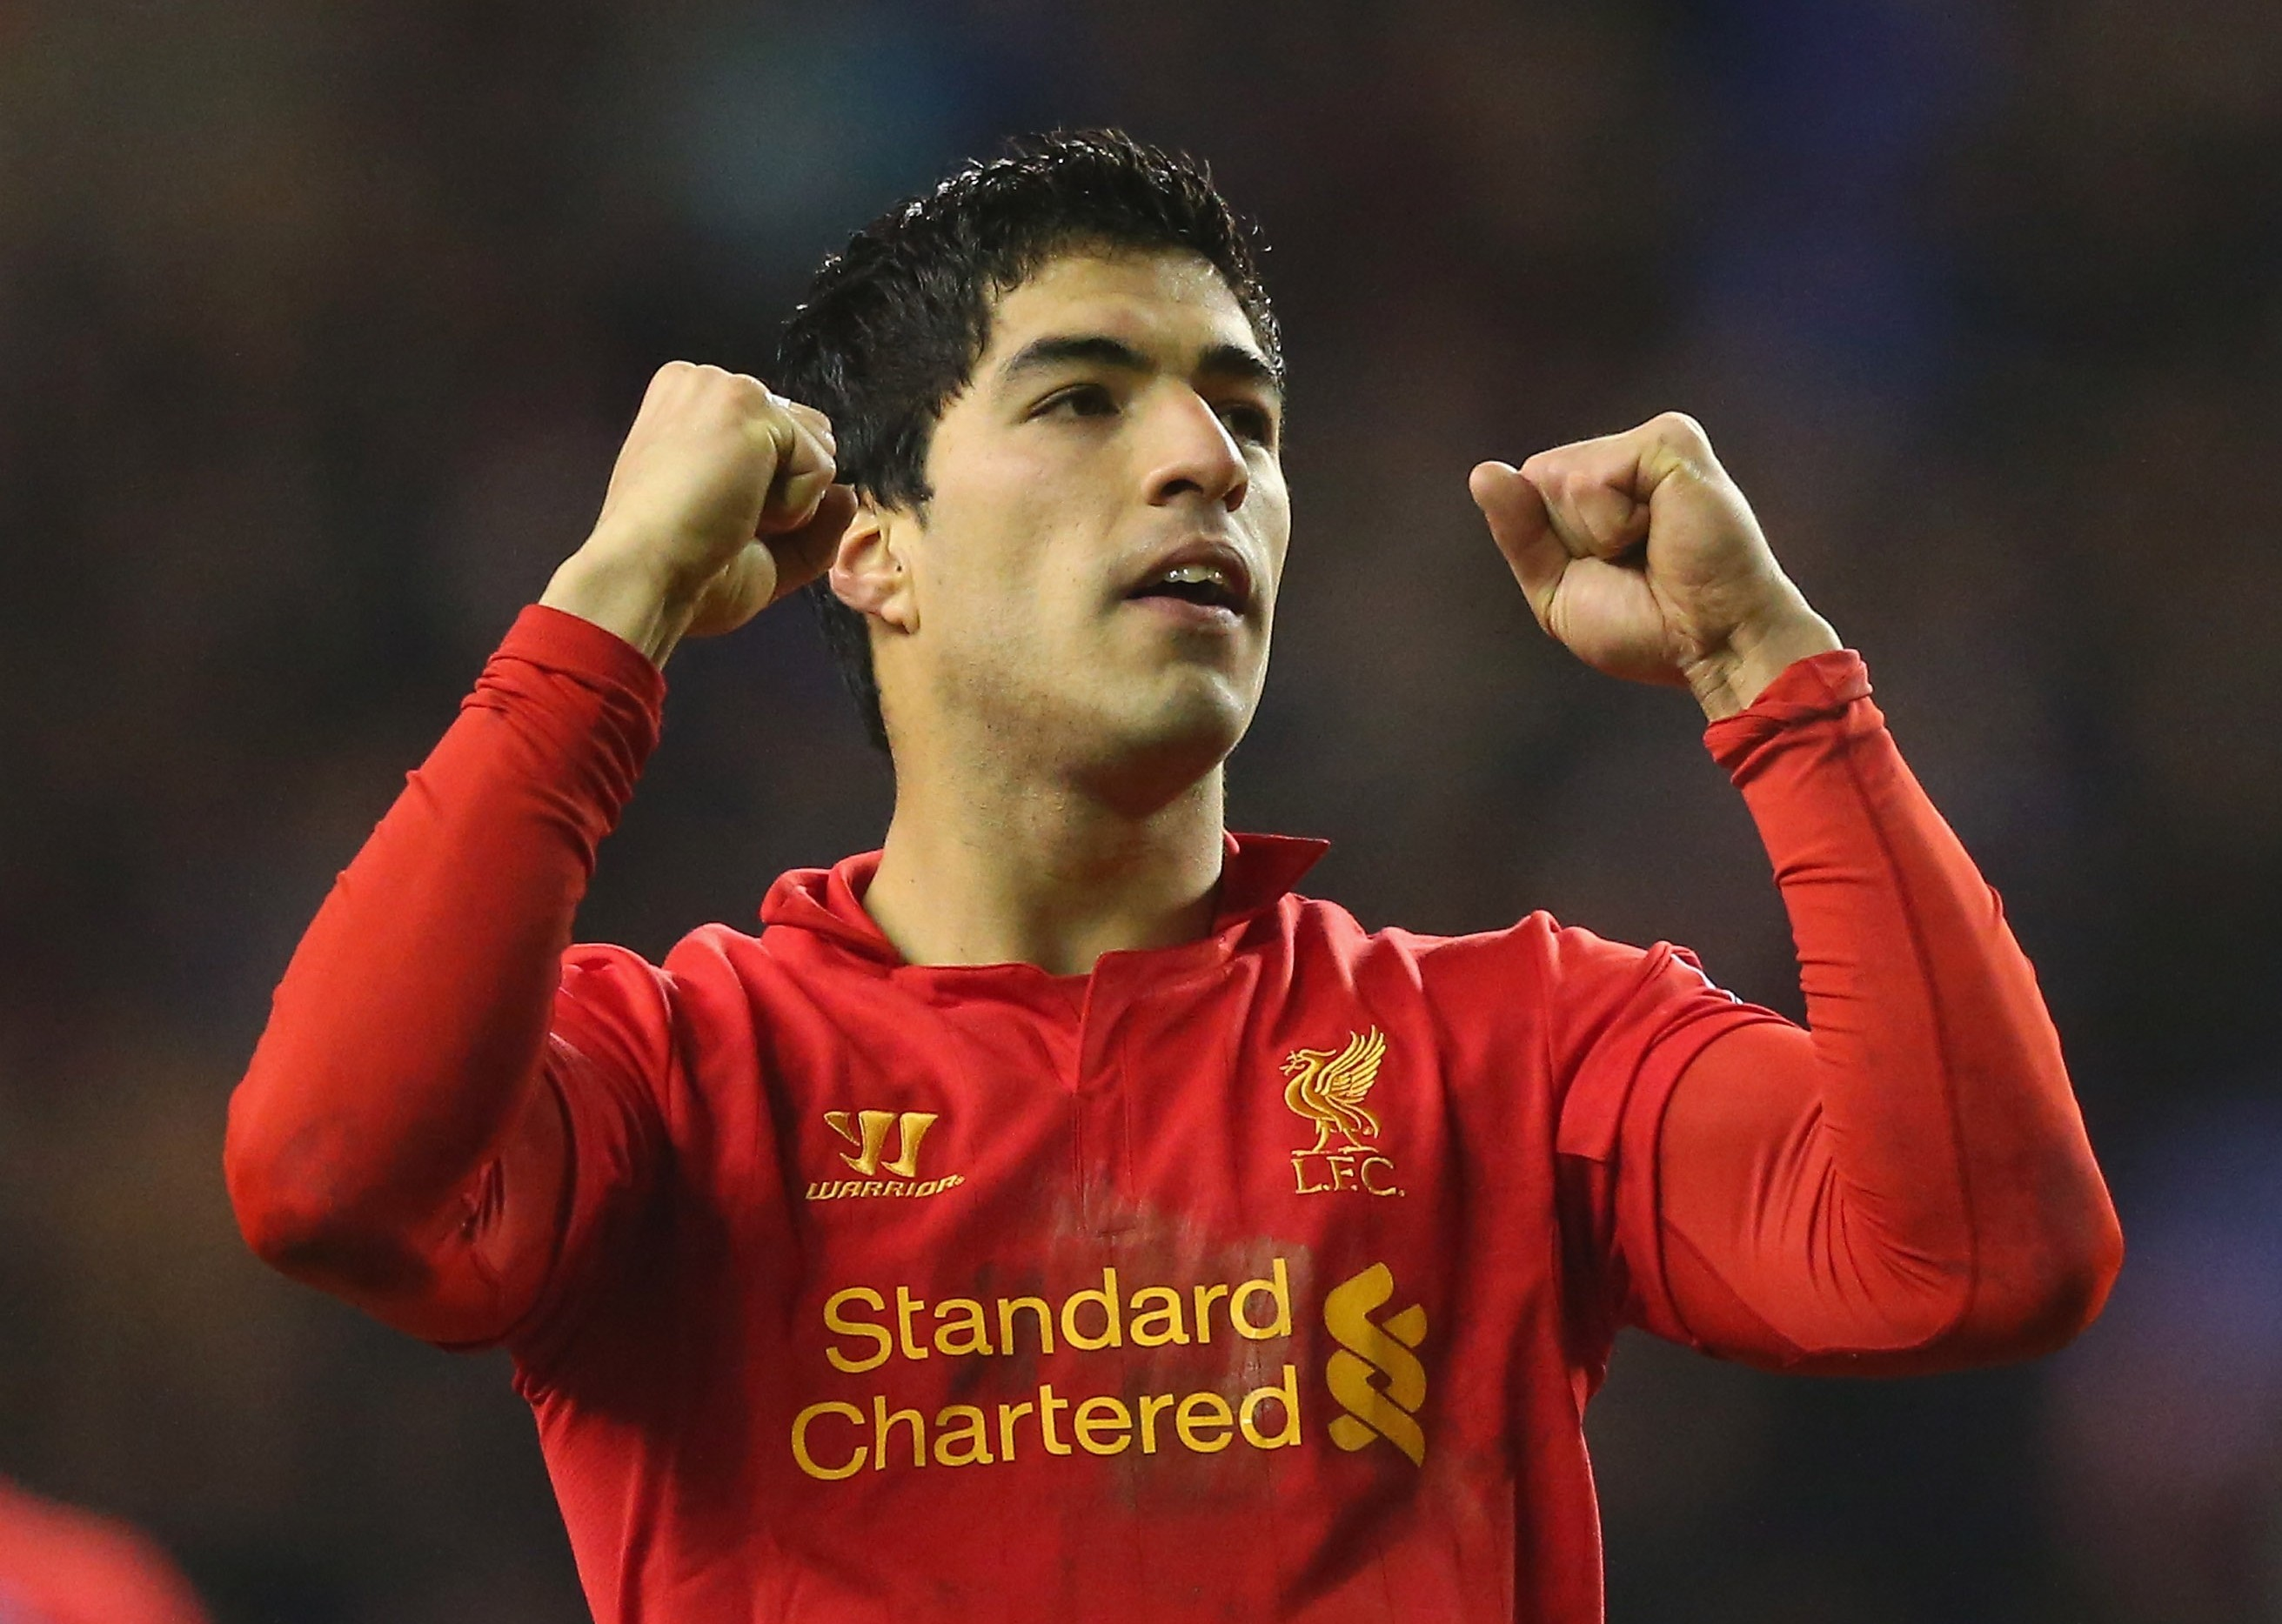 Luis Suarez warns Liverpool he'd 'welcome' offers from Champions League clubs